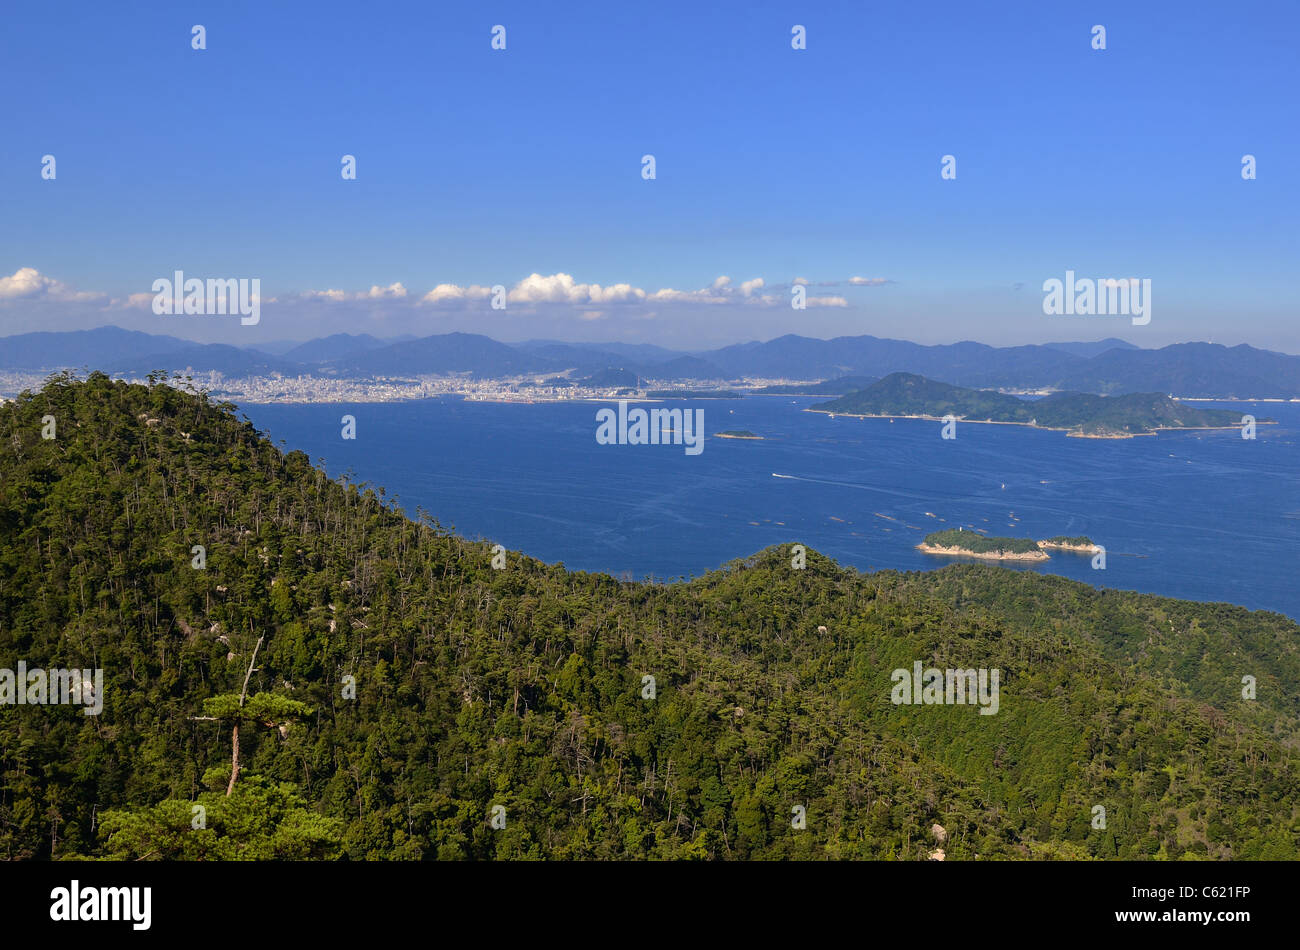 Seto Inland Sea in Japan as seen from Mt. Misen on Itsukushima Island. Stock Photo